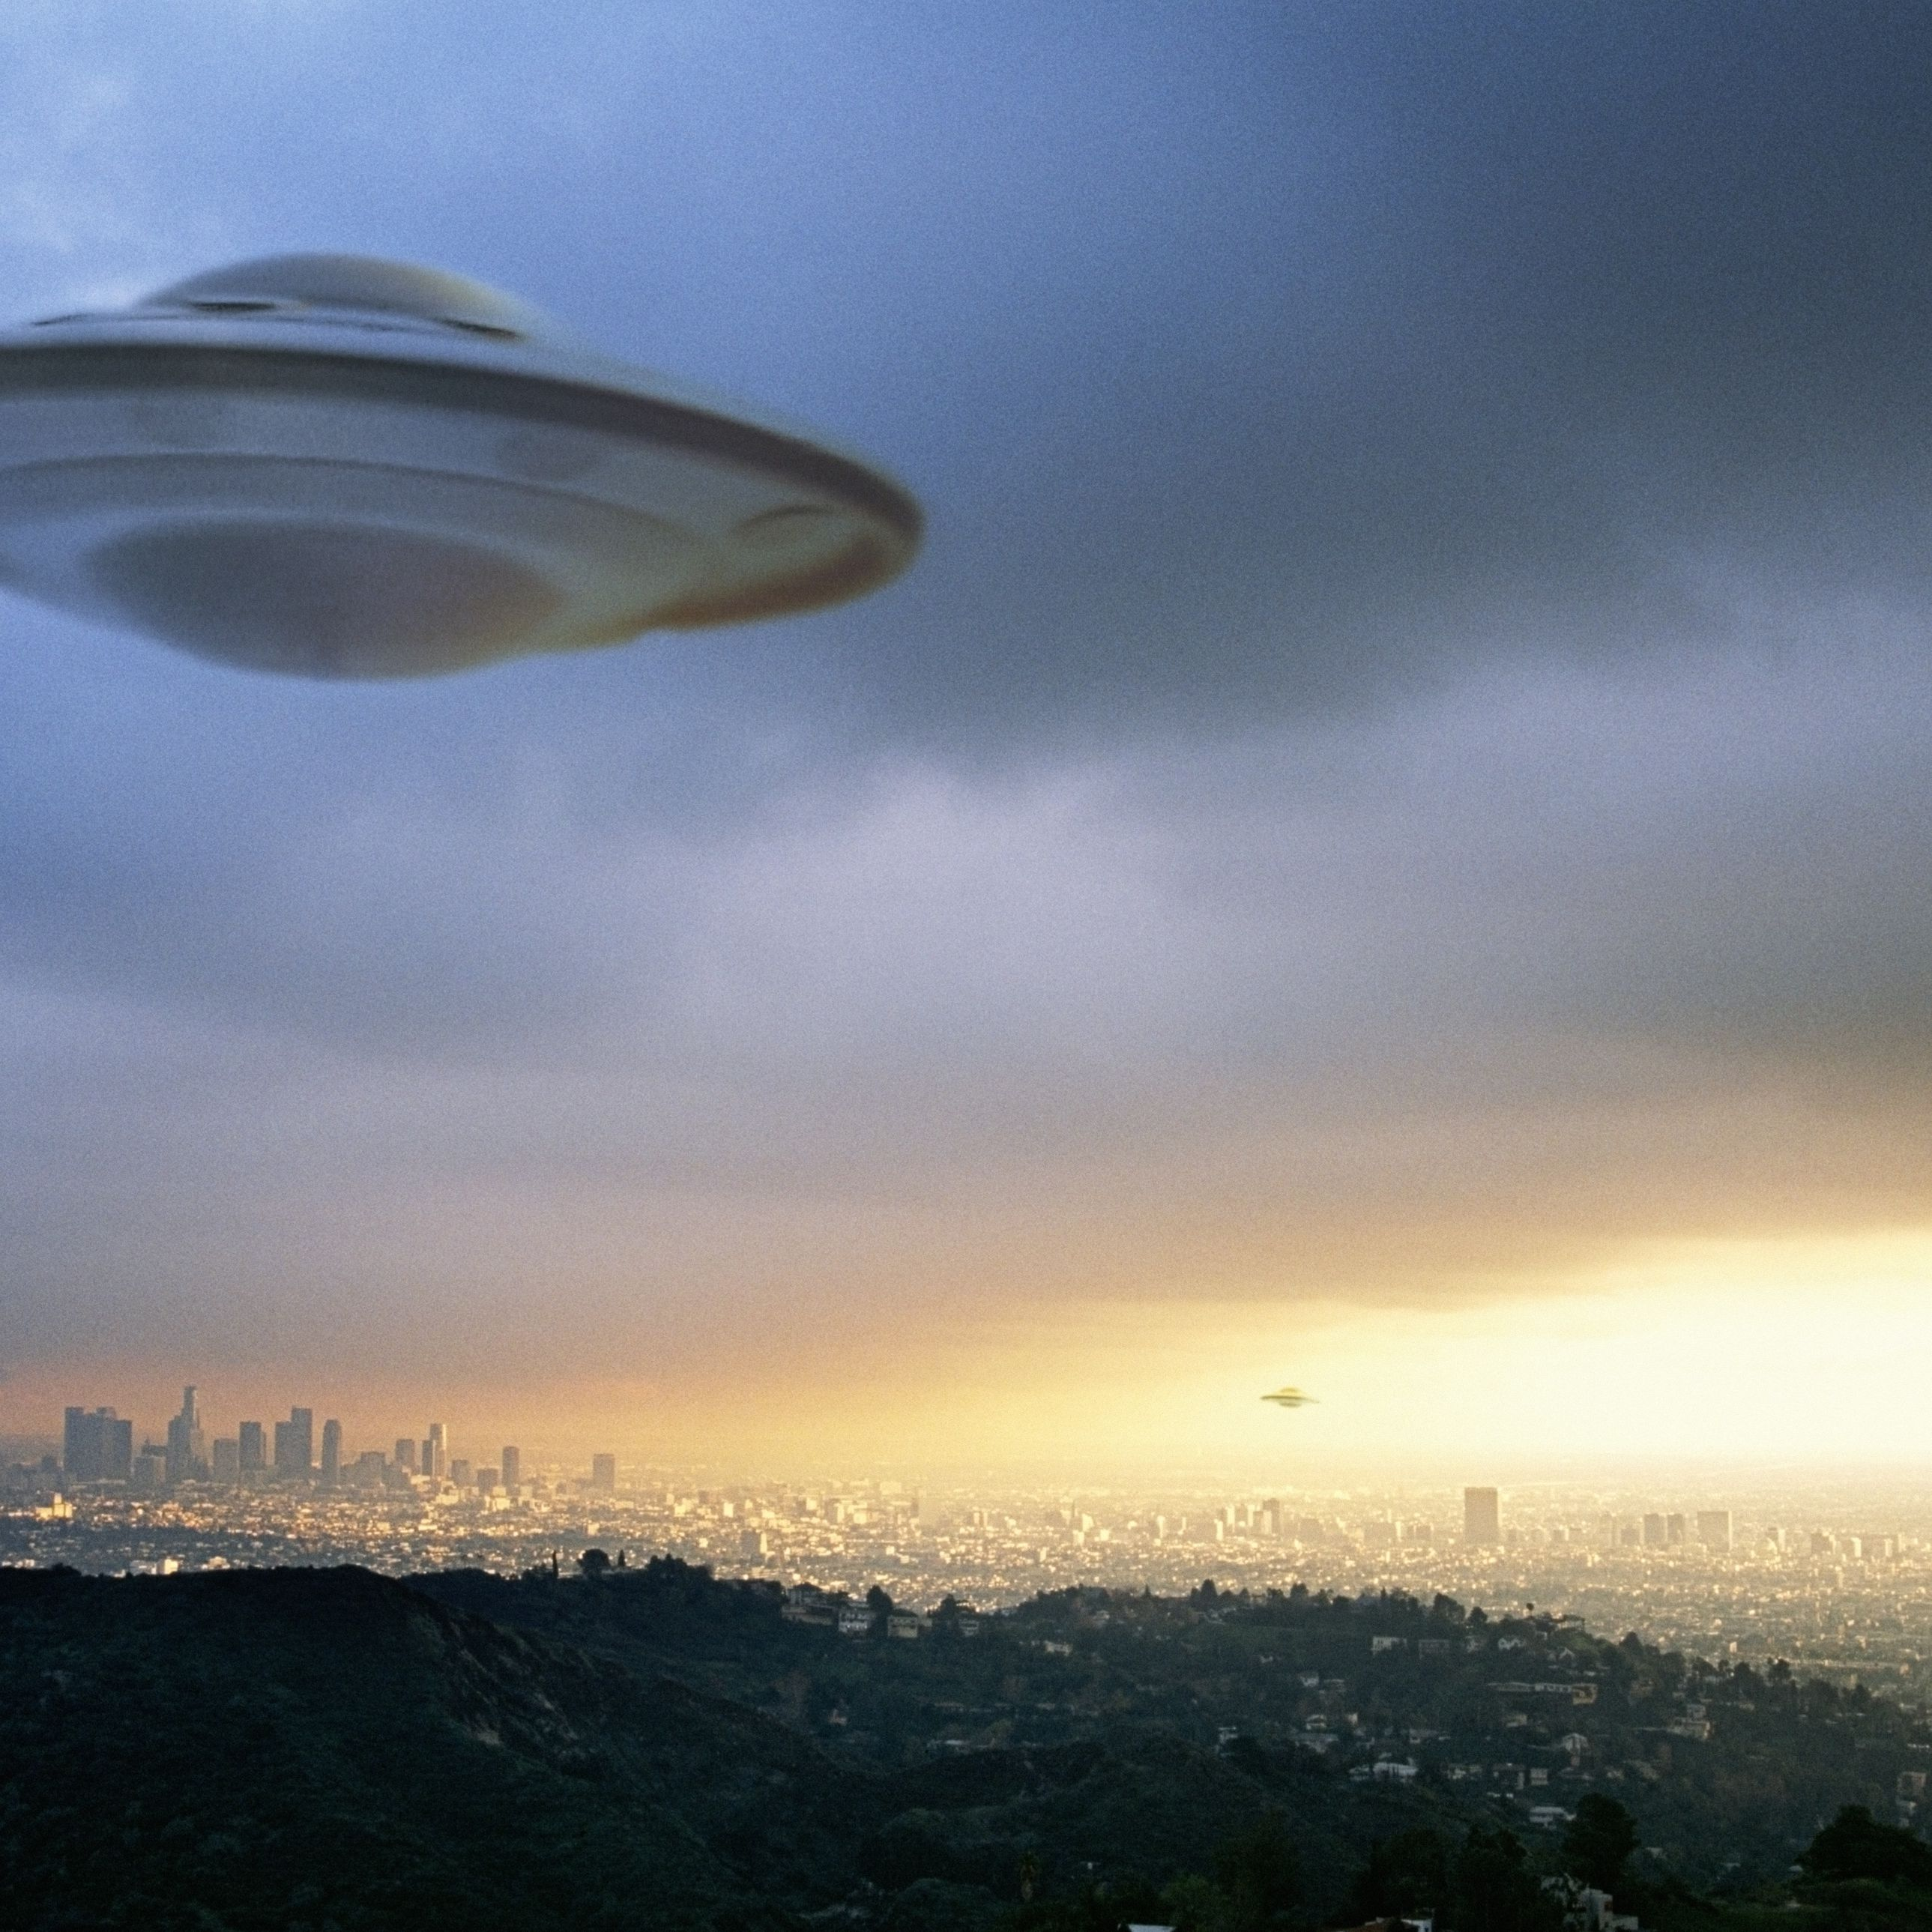 Ana Lago Hot 20 of the most famous ufo photos ever taken